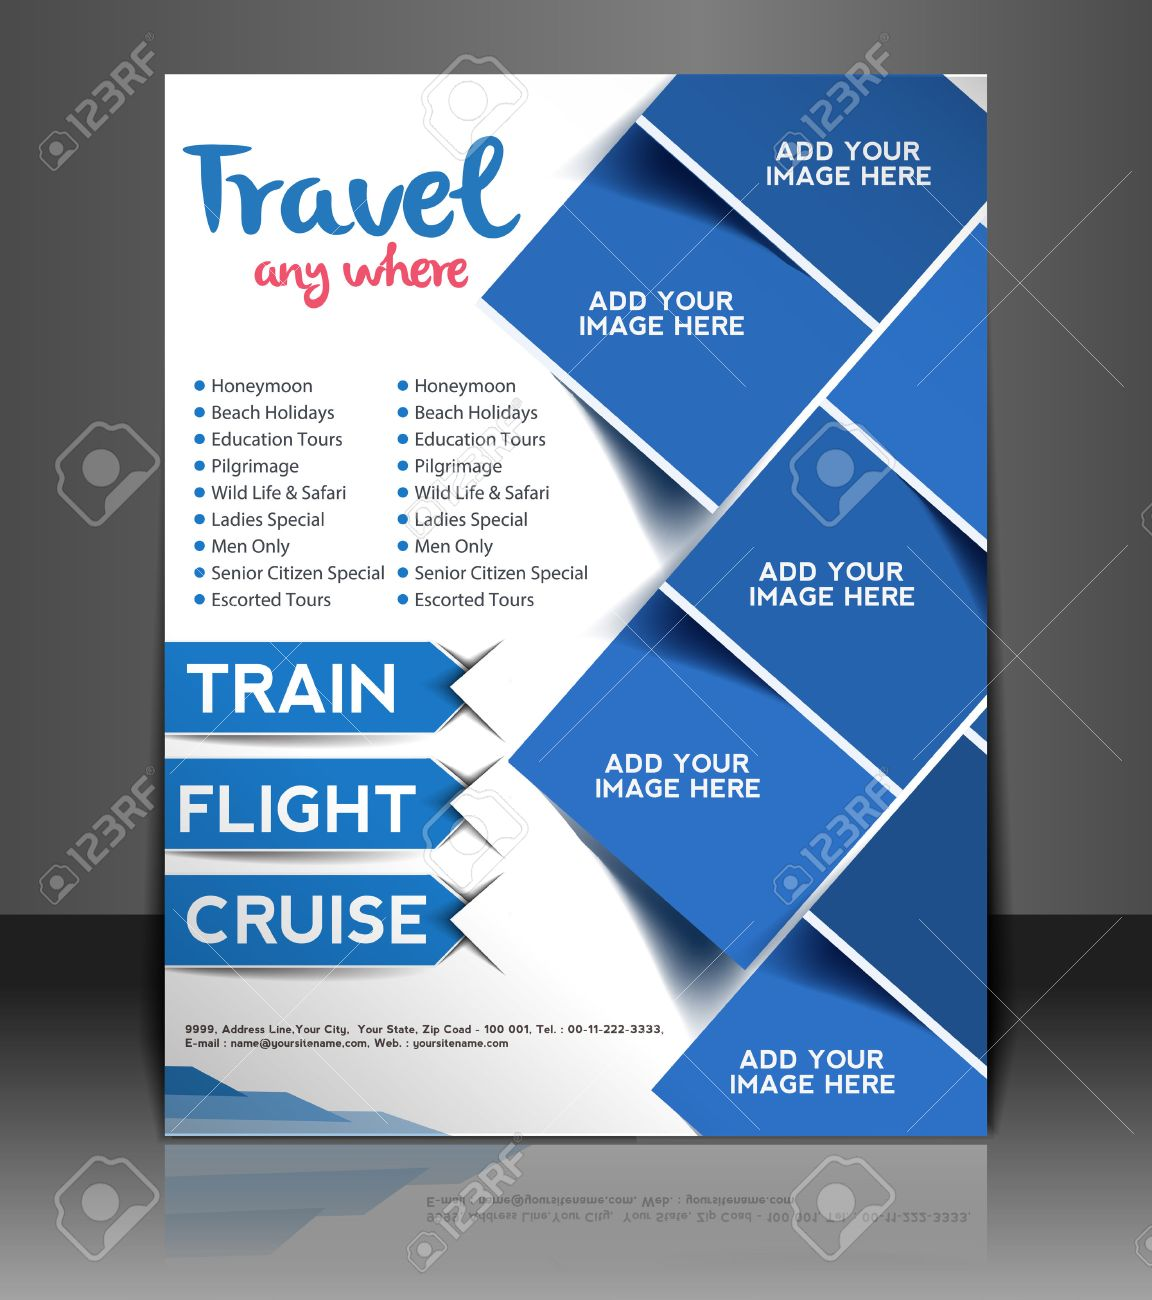 Poster design for free - Travel Center Flyer Poster Template Design Stock Vector 26562978